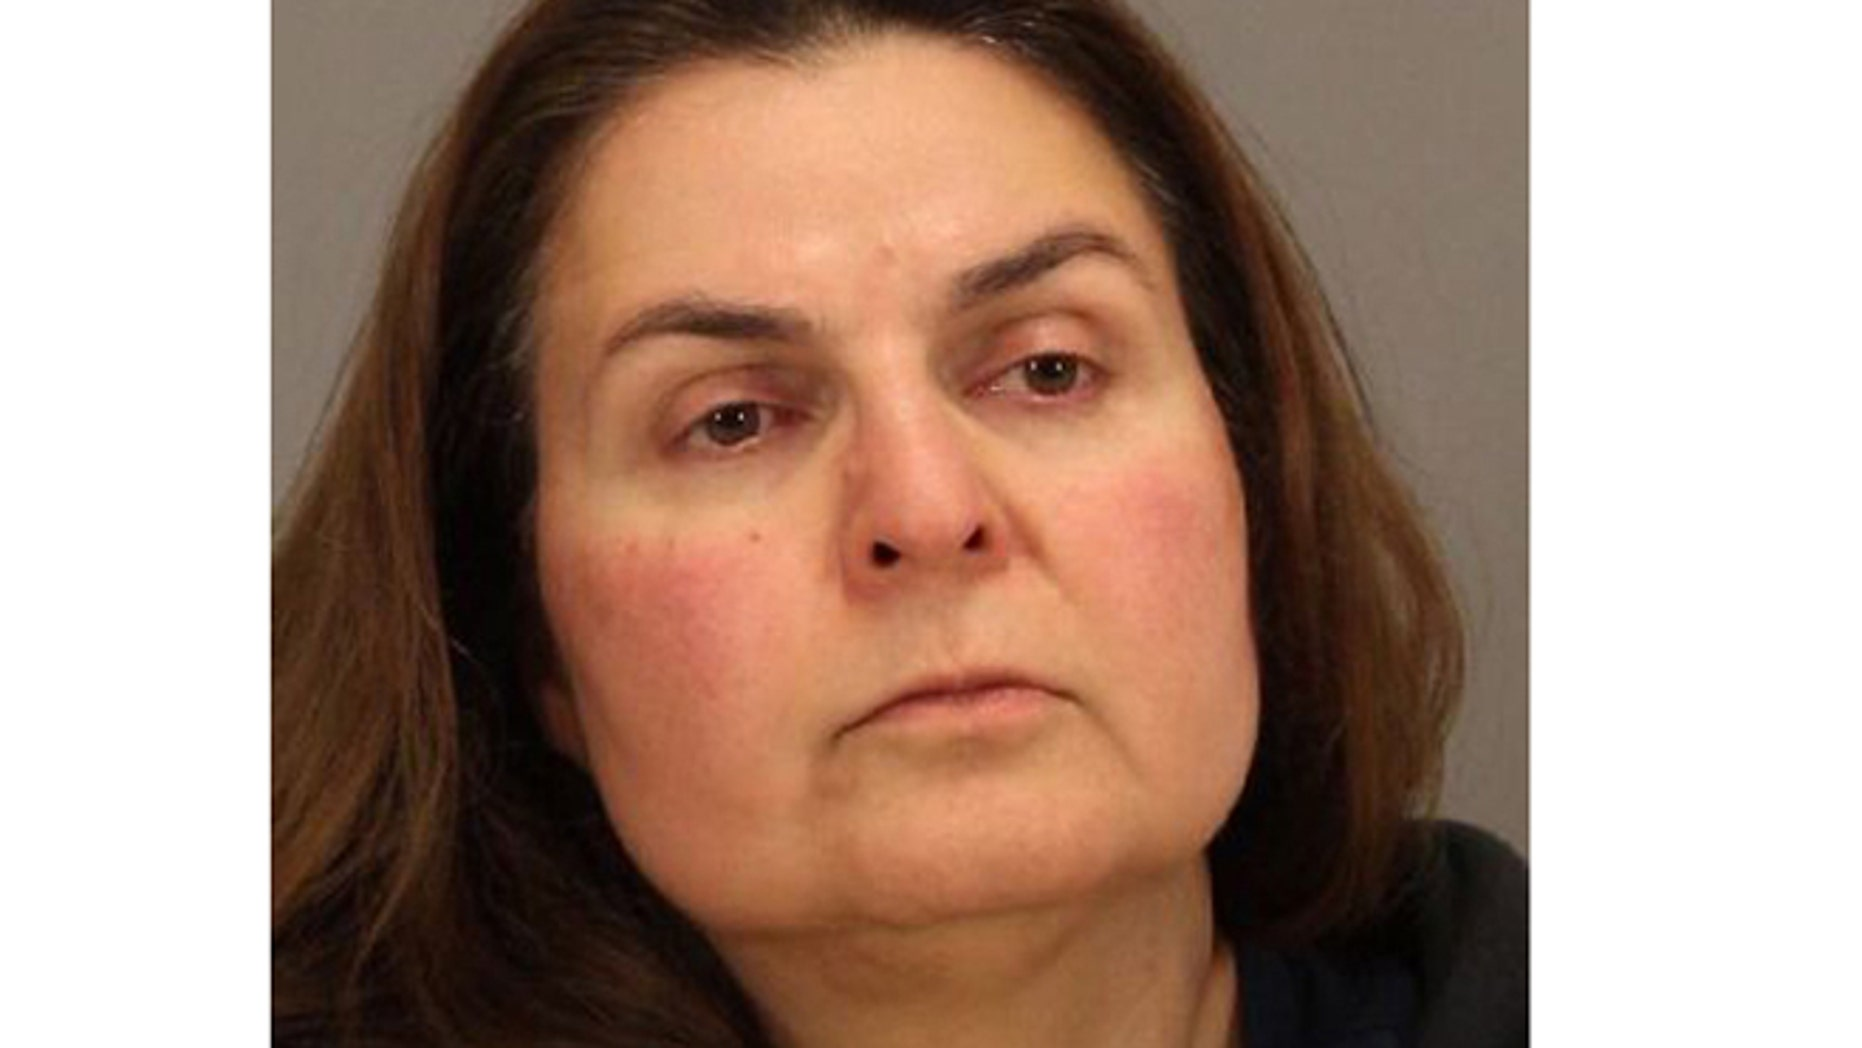 California woman accused of sneaking juice mixed with rubbing